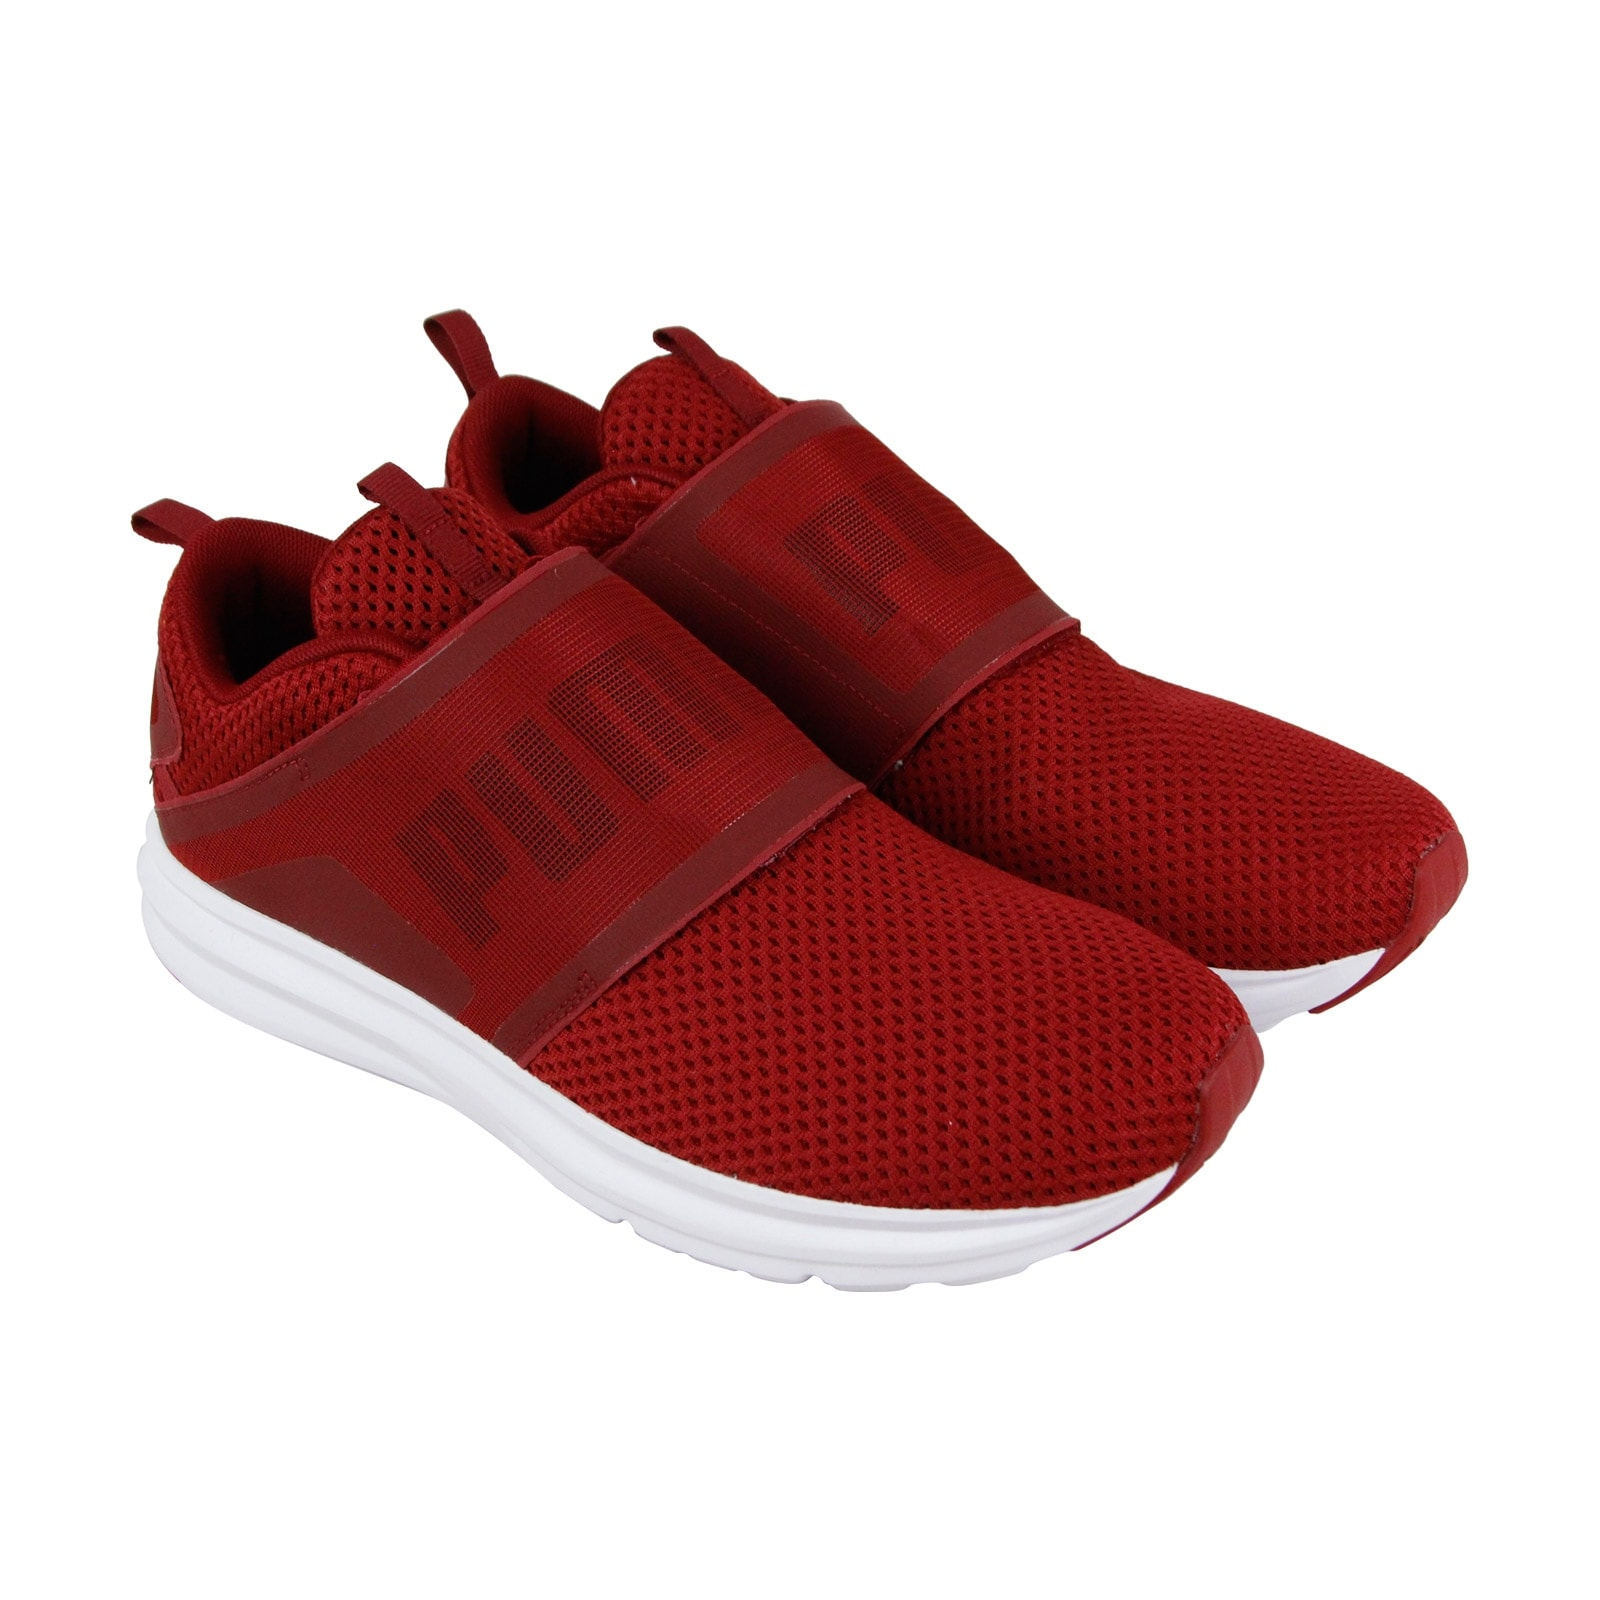 Shop Puma Enzo Strap Mens Red Mesh Athletic Strap Running Shoes - Free  Shipping On Orders Over  45 - Overstock - 25429750 34d686f49